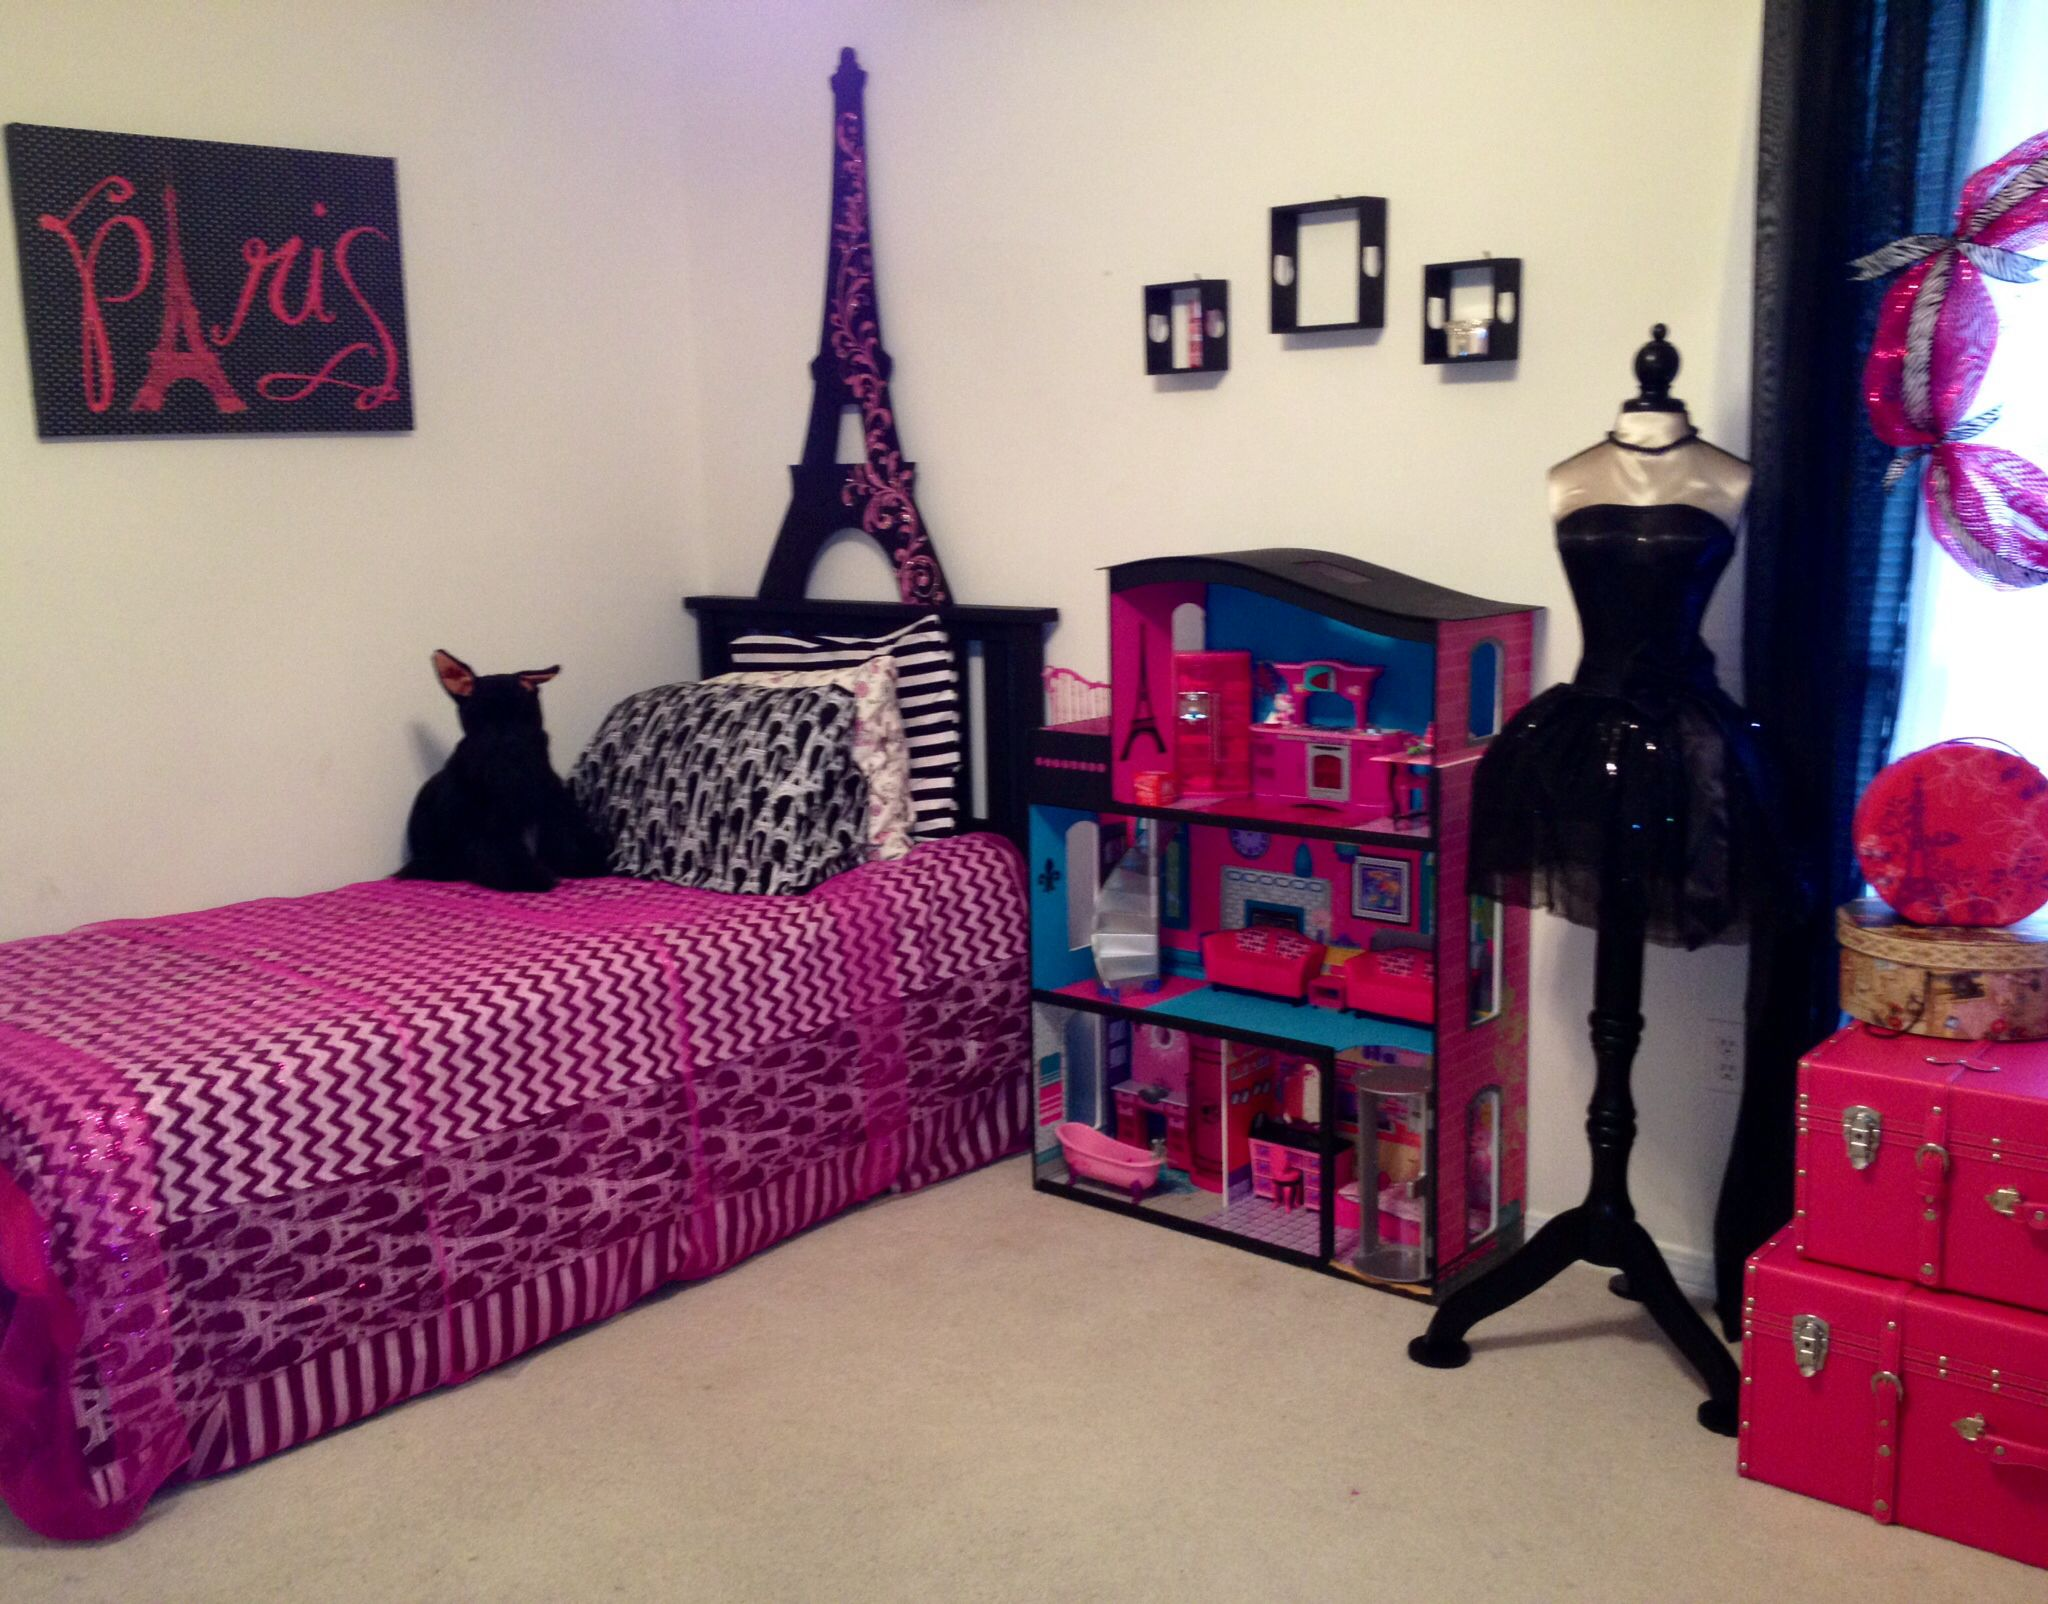 Little girls bedroom to 13 year olds dream room monster 11 year old girls room